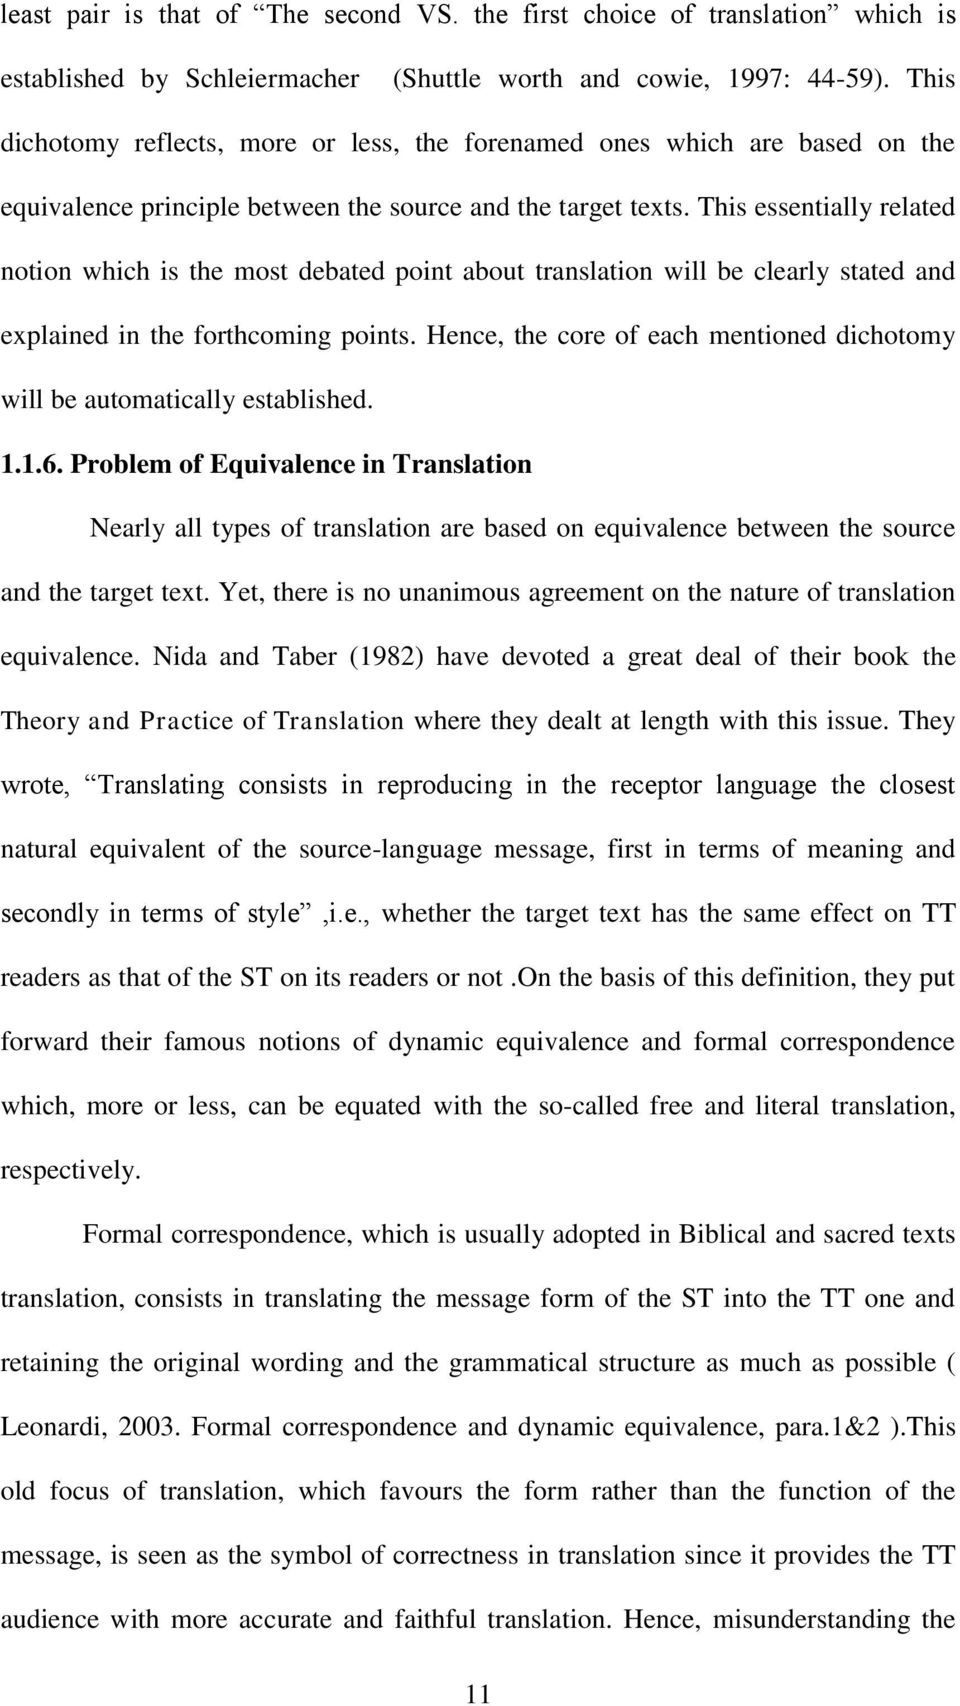 This essentially related notion which is the most debated point about translation will be clearly stated and explained in the forthcoming points.